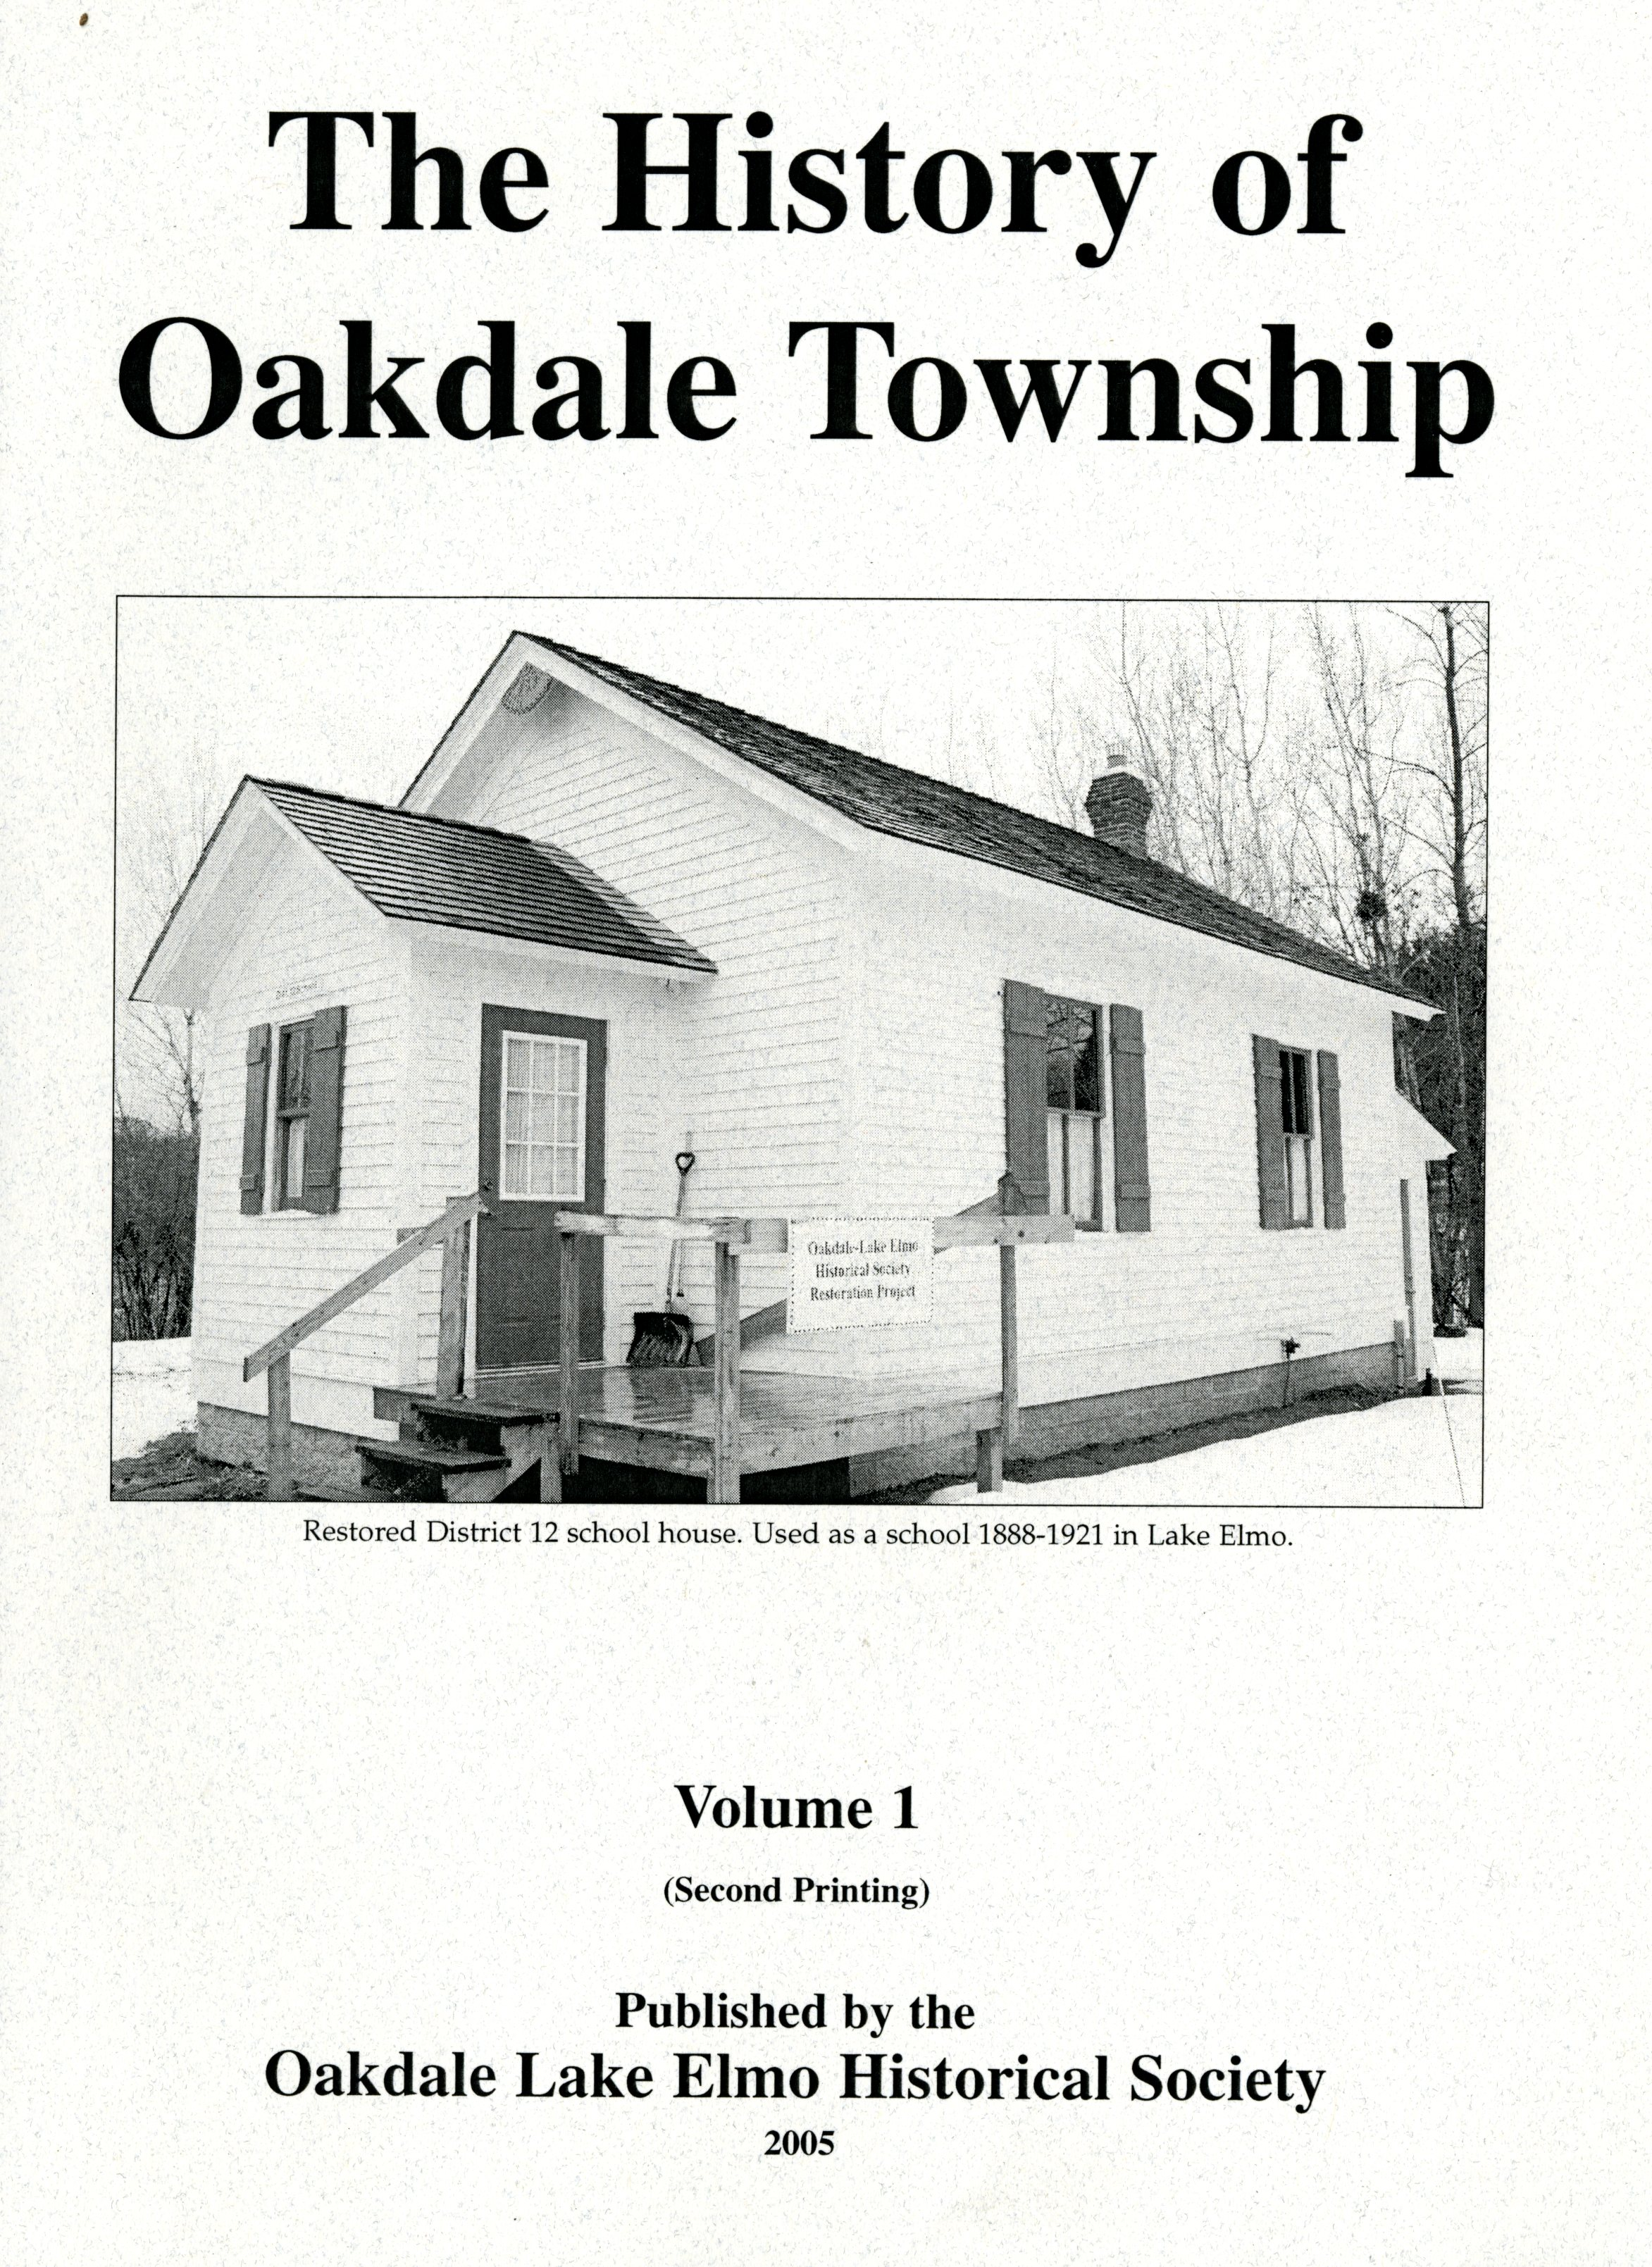 The History of Oakdale Township